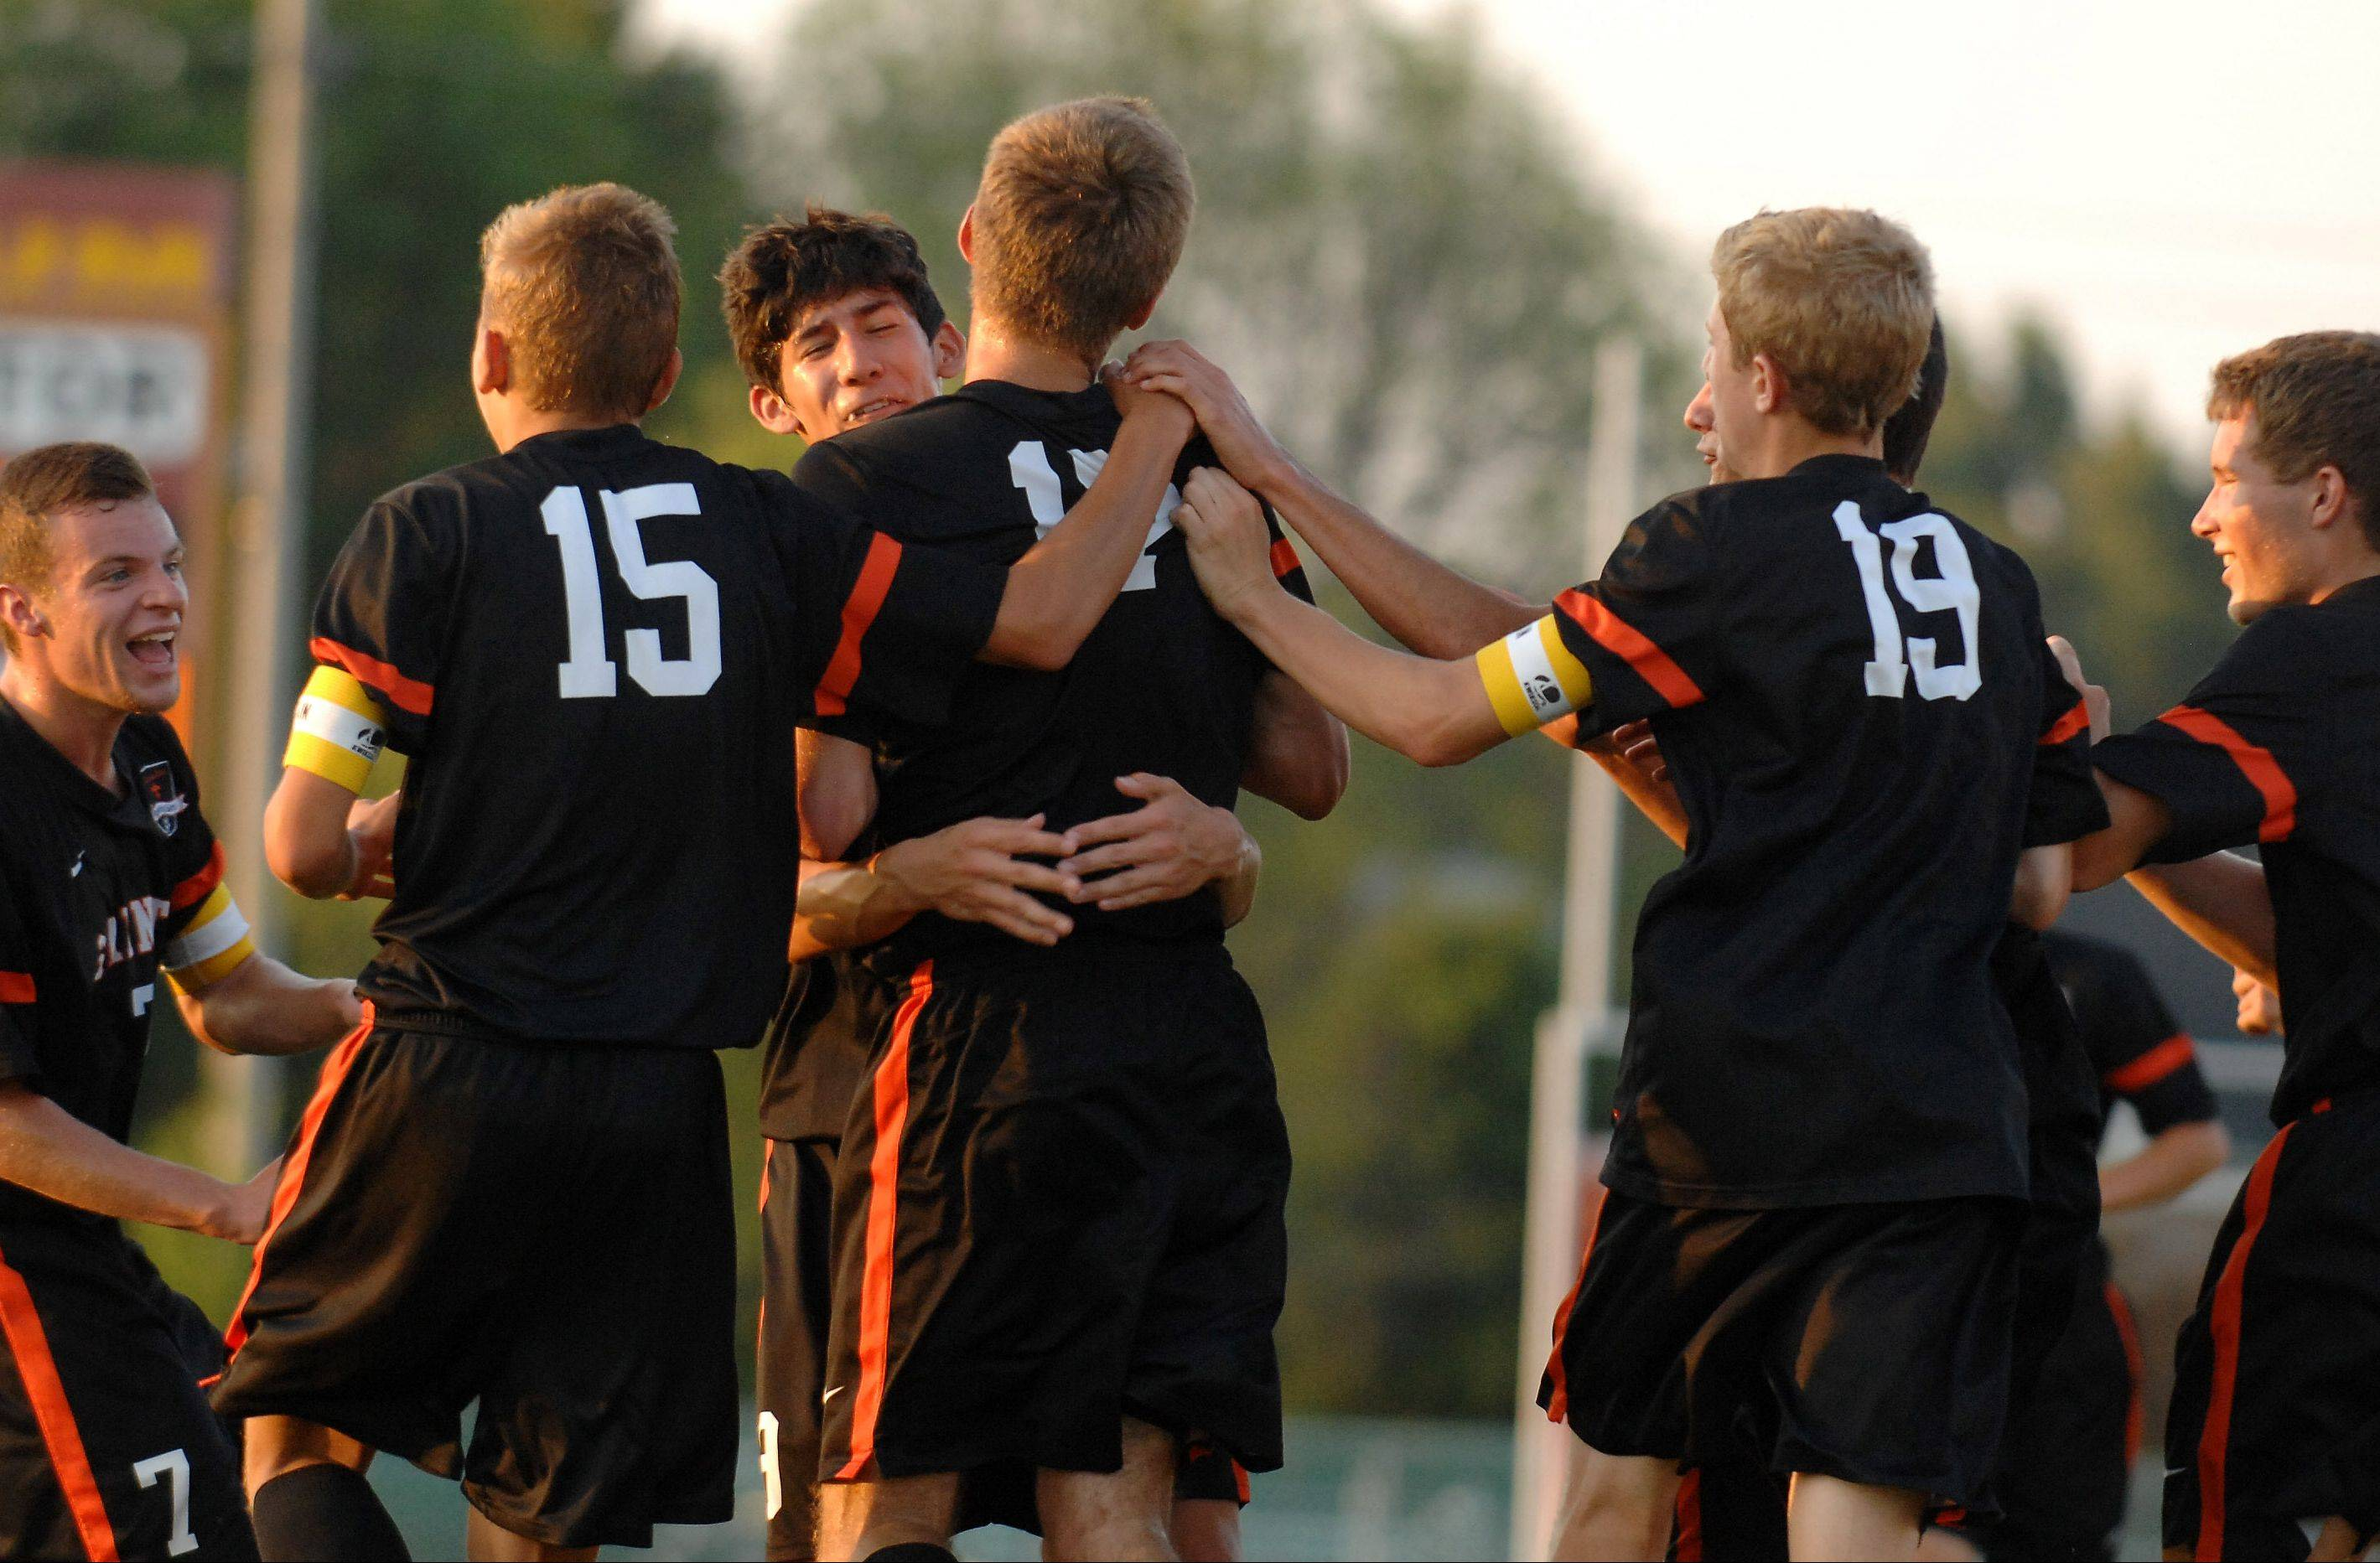 Teammates swarm St. Charles East's Evan DiLeonardi, 17, after he scored the first goal for the Saints during Thursday's game in Batavia.